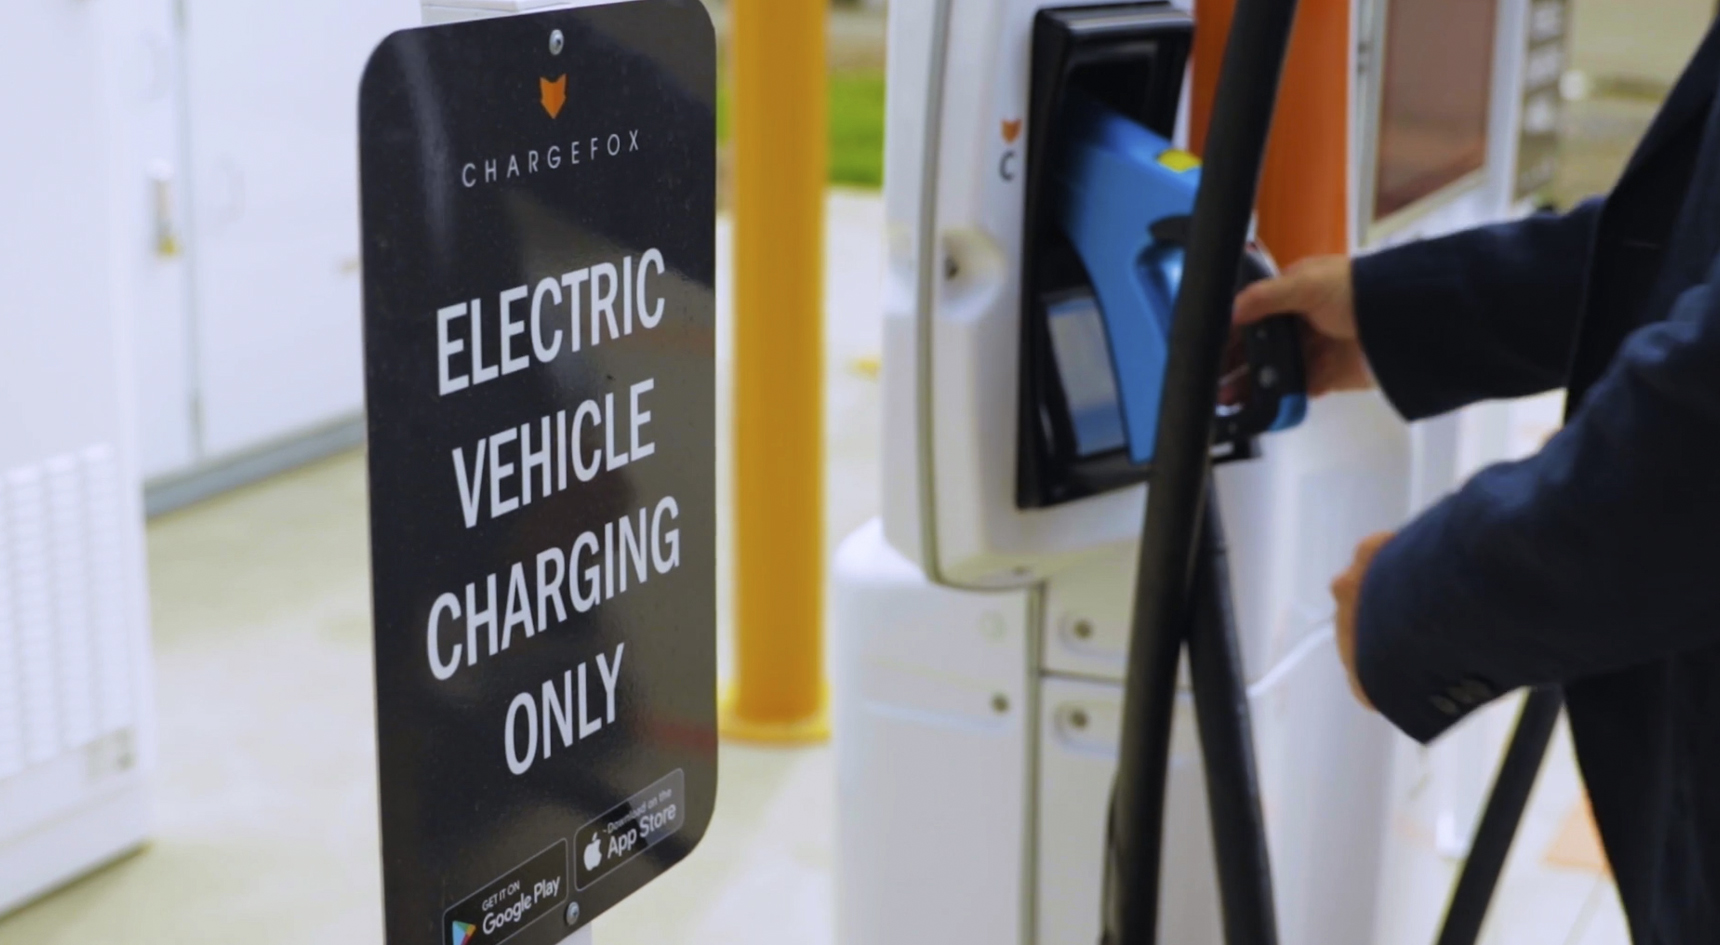 A person's hand reaching for a charger at an Electric Vehicle charging station.